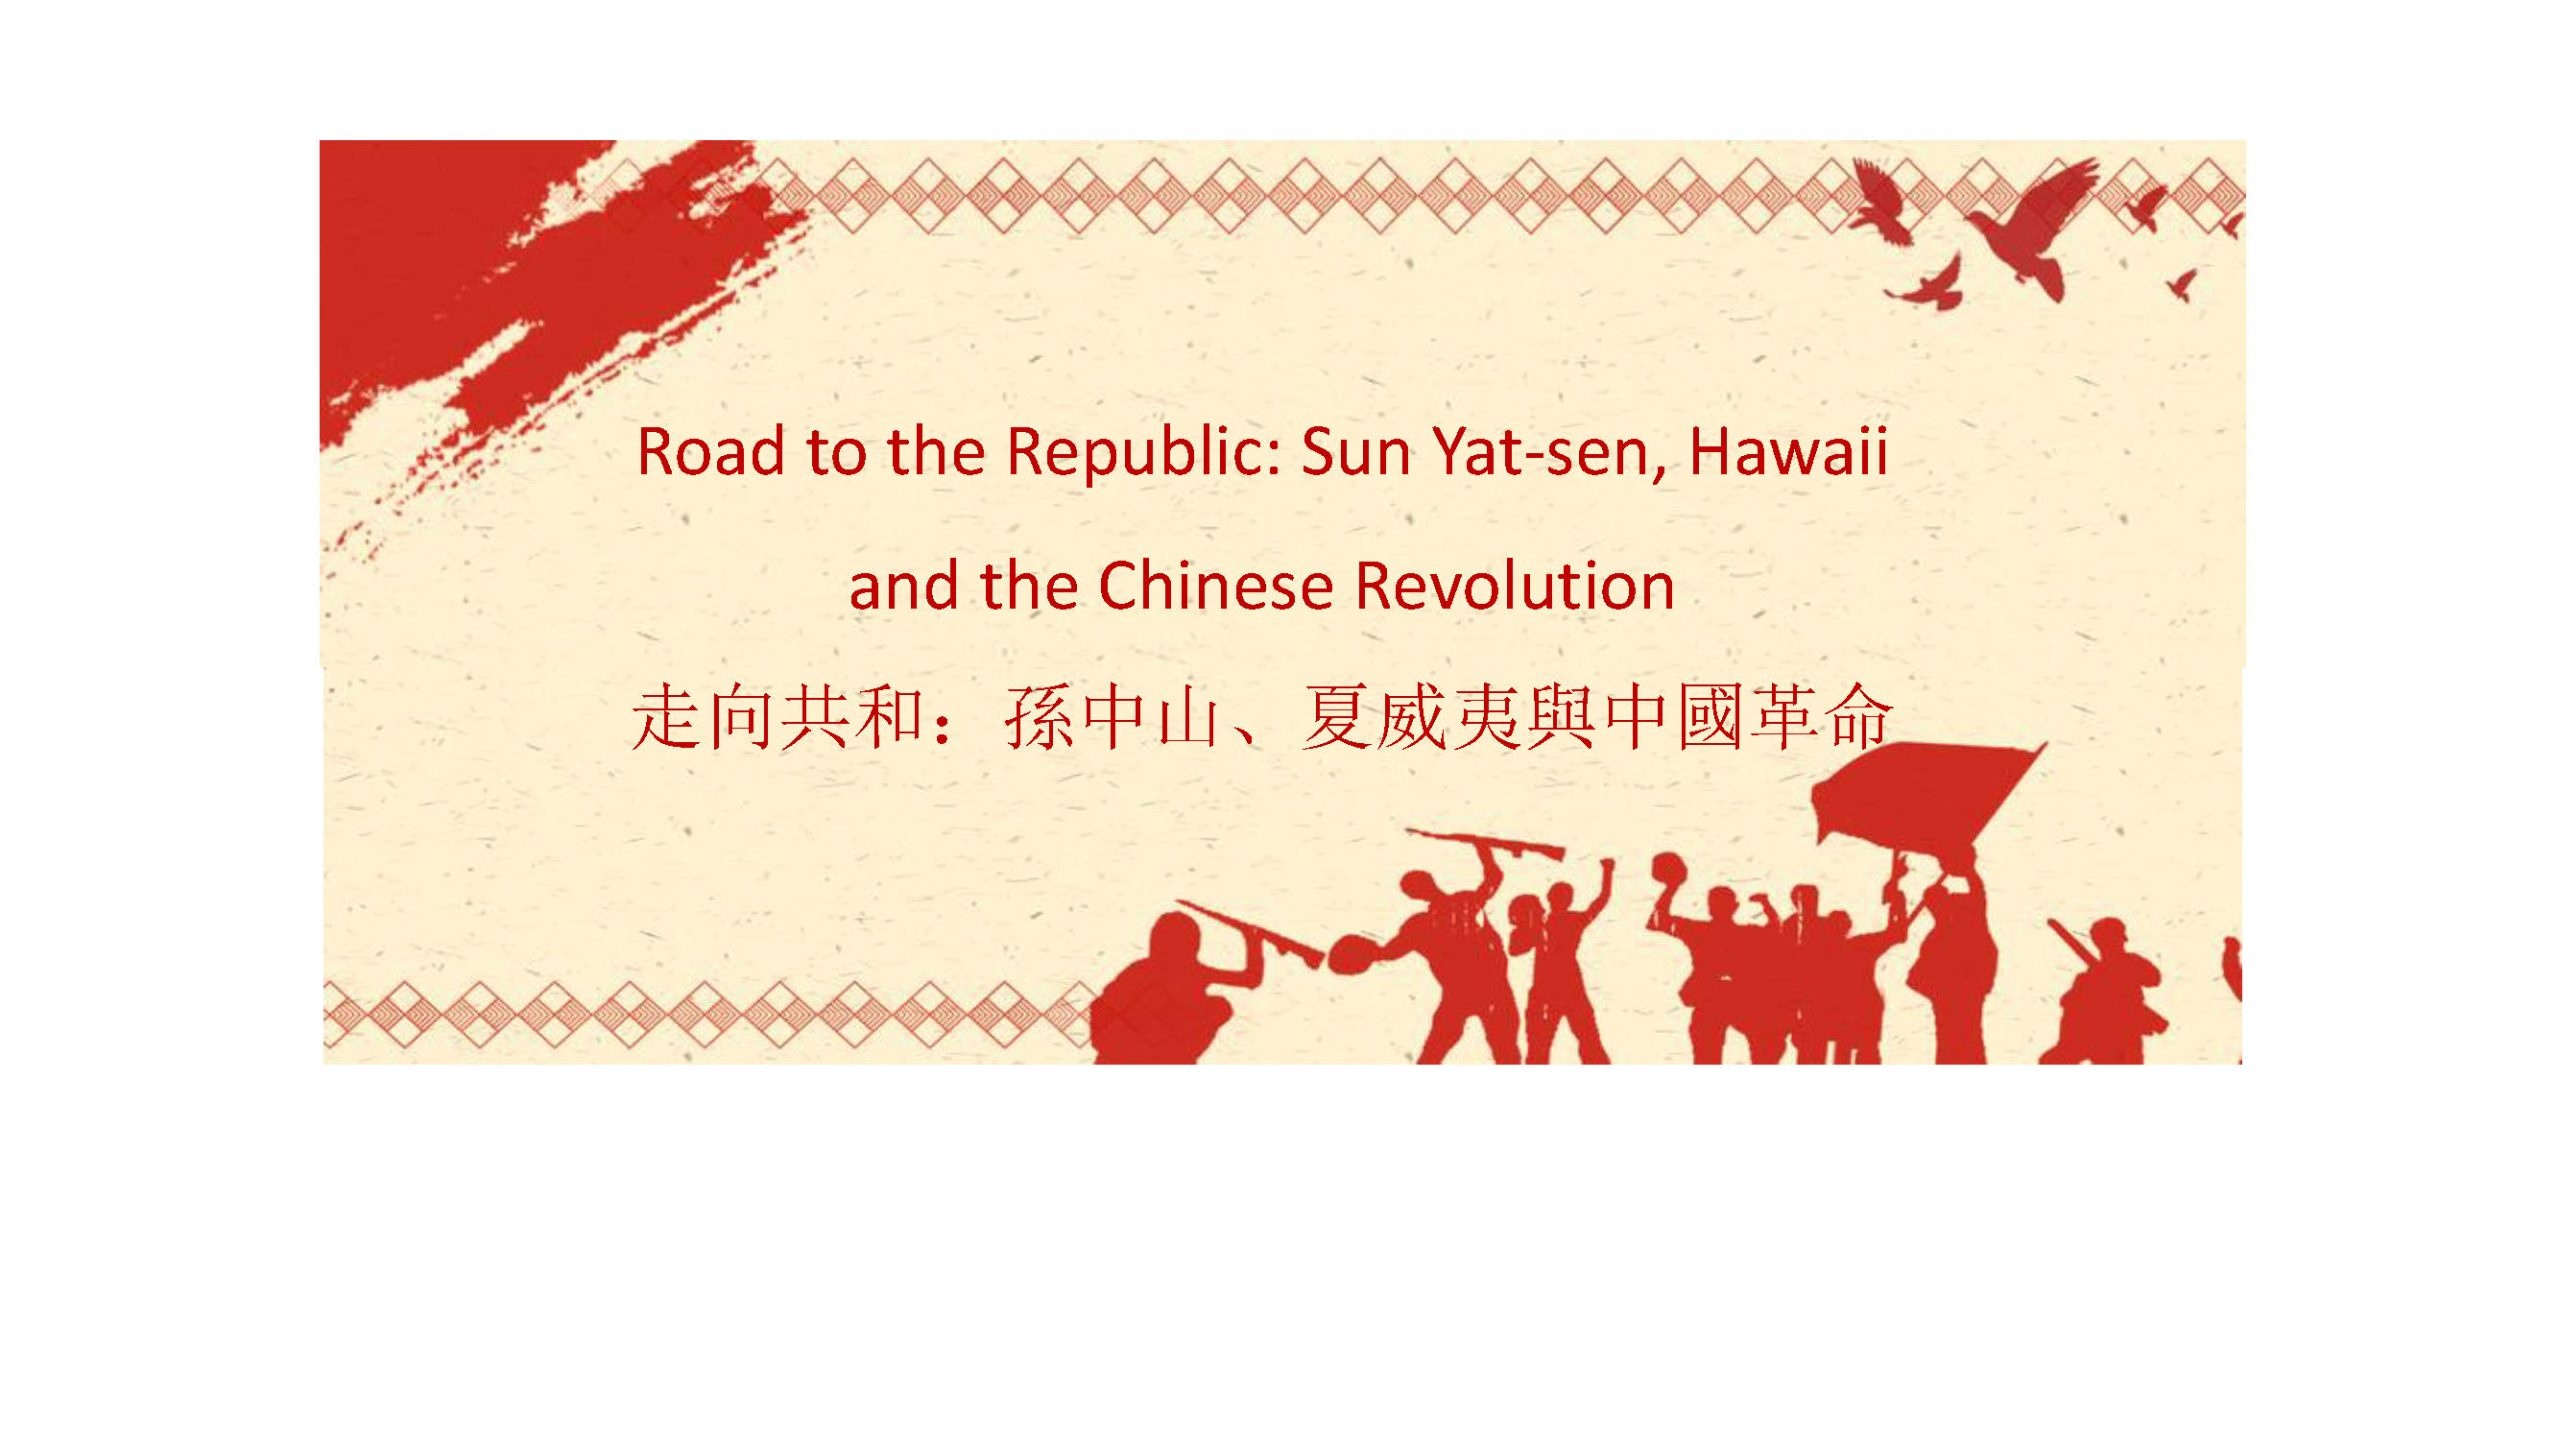 Road to the Republic: Sun Yat-sen, Hawaii and the Chinese Revolution